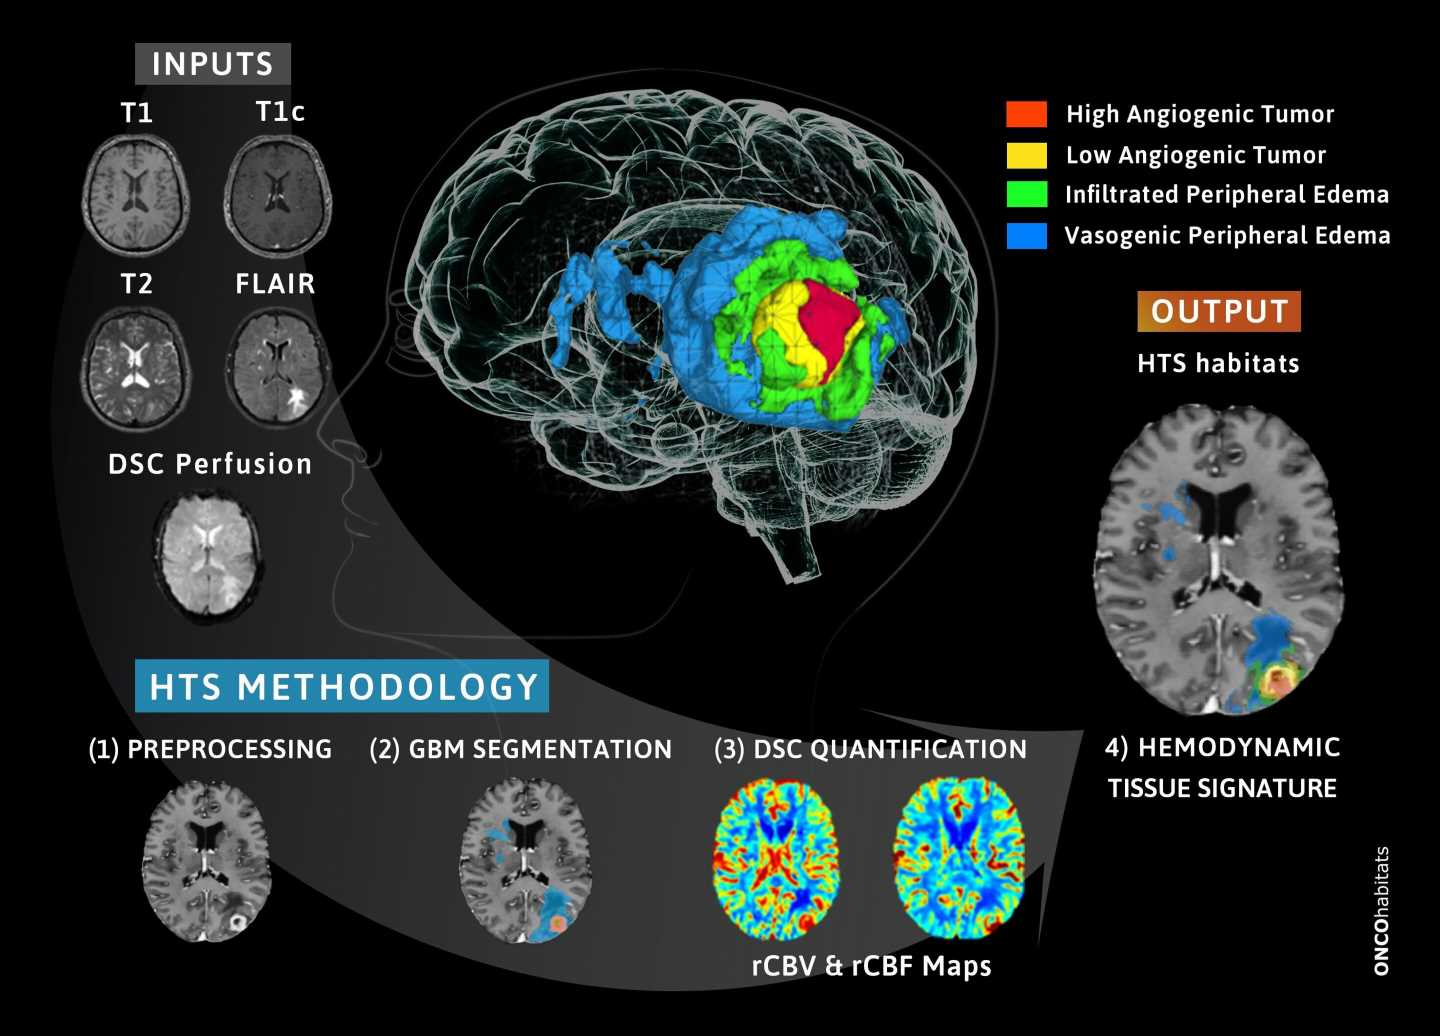 New methodology developed to monitor patients with glioblastoma